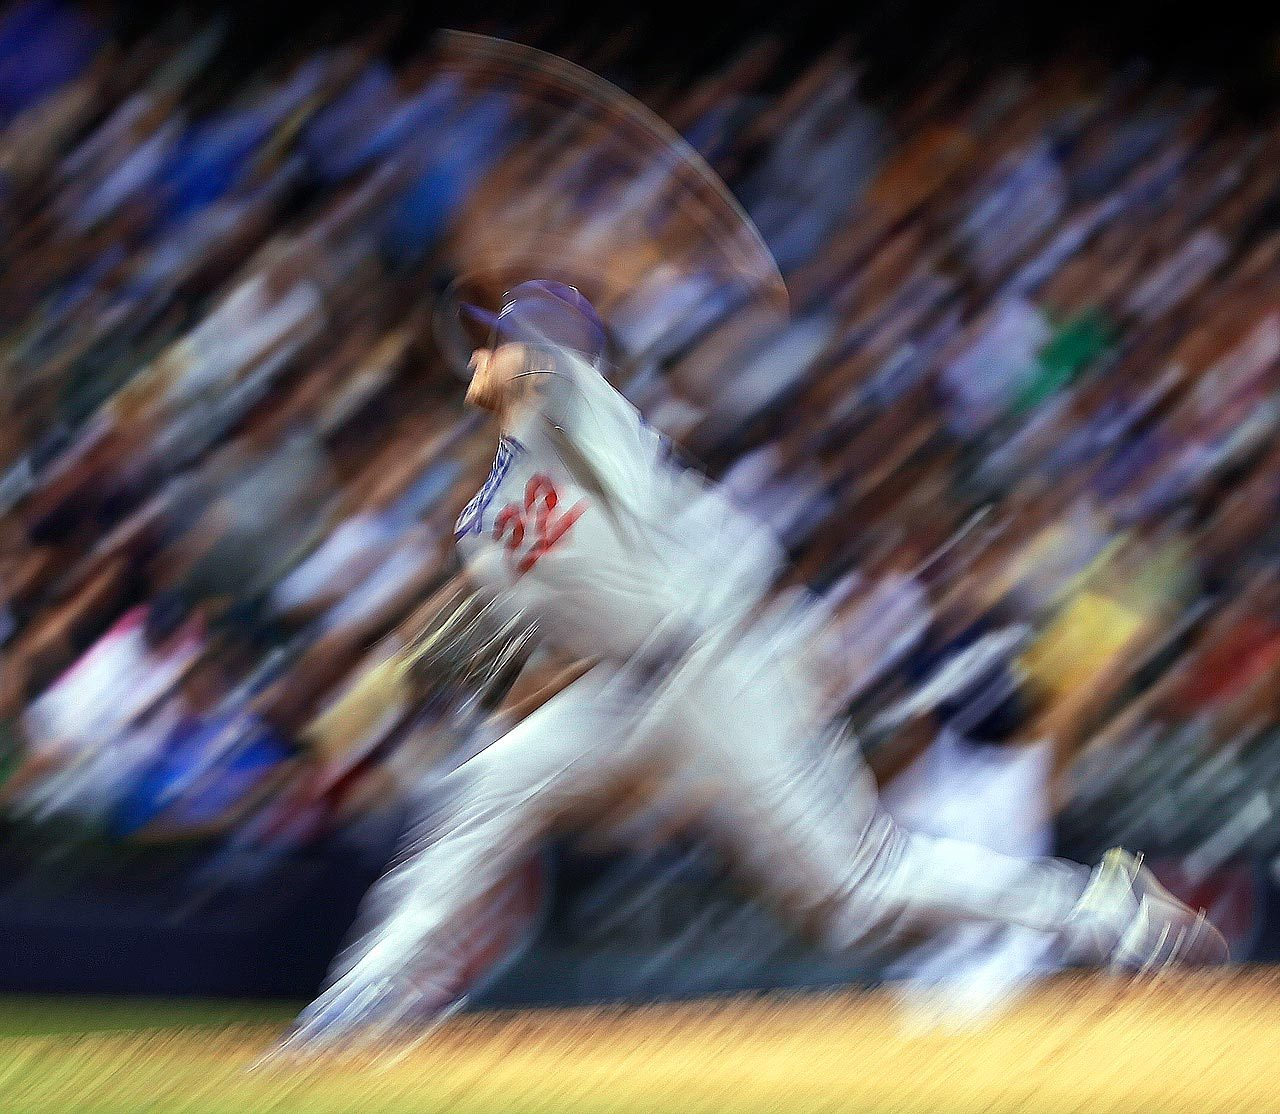 sportingnewsarchive:  JUST A BLUR Los Angeles Dodgers starting pitcher Clayton Kershaw throws during the sixth inning of a baseball game against the Milwaukee Brewers Monday, May 20, 2013, in Milwaukee. (AP Photo/Morry Gash)